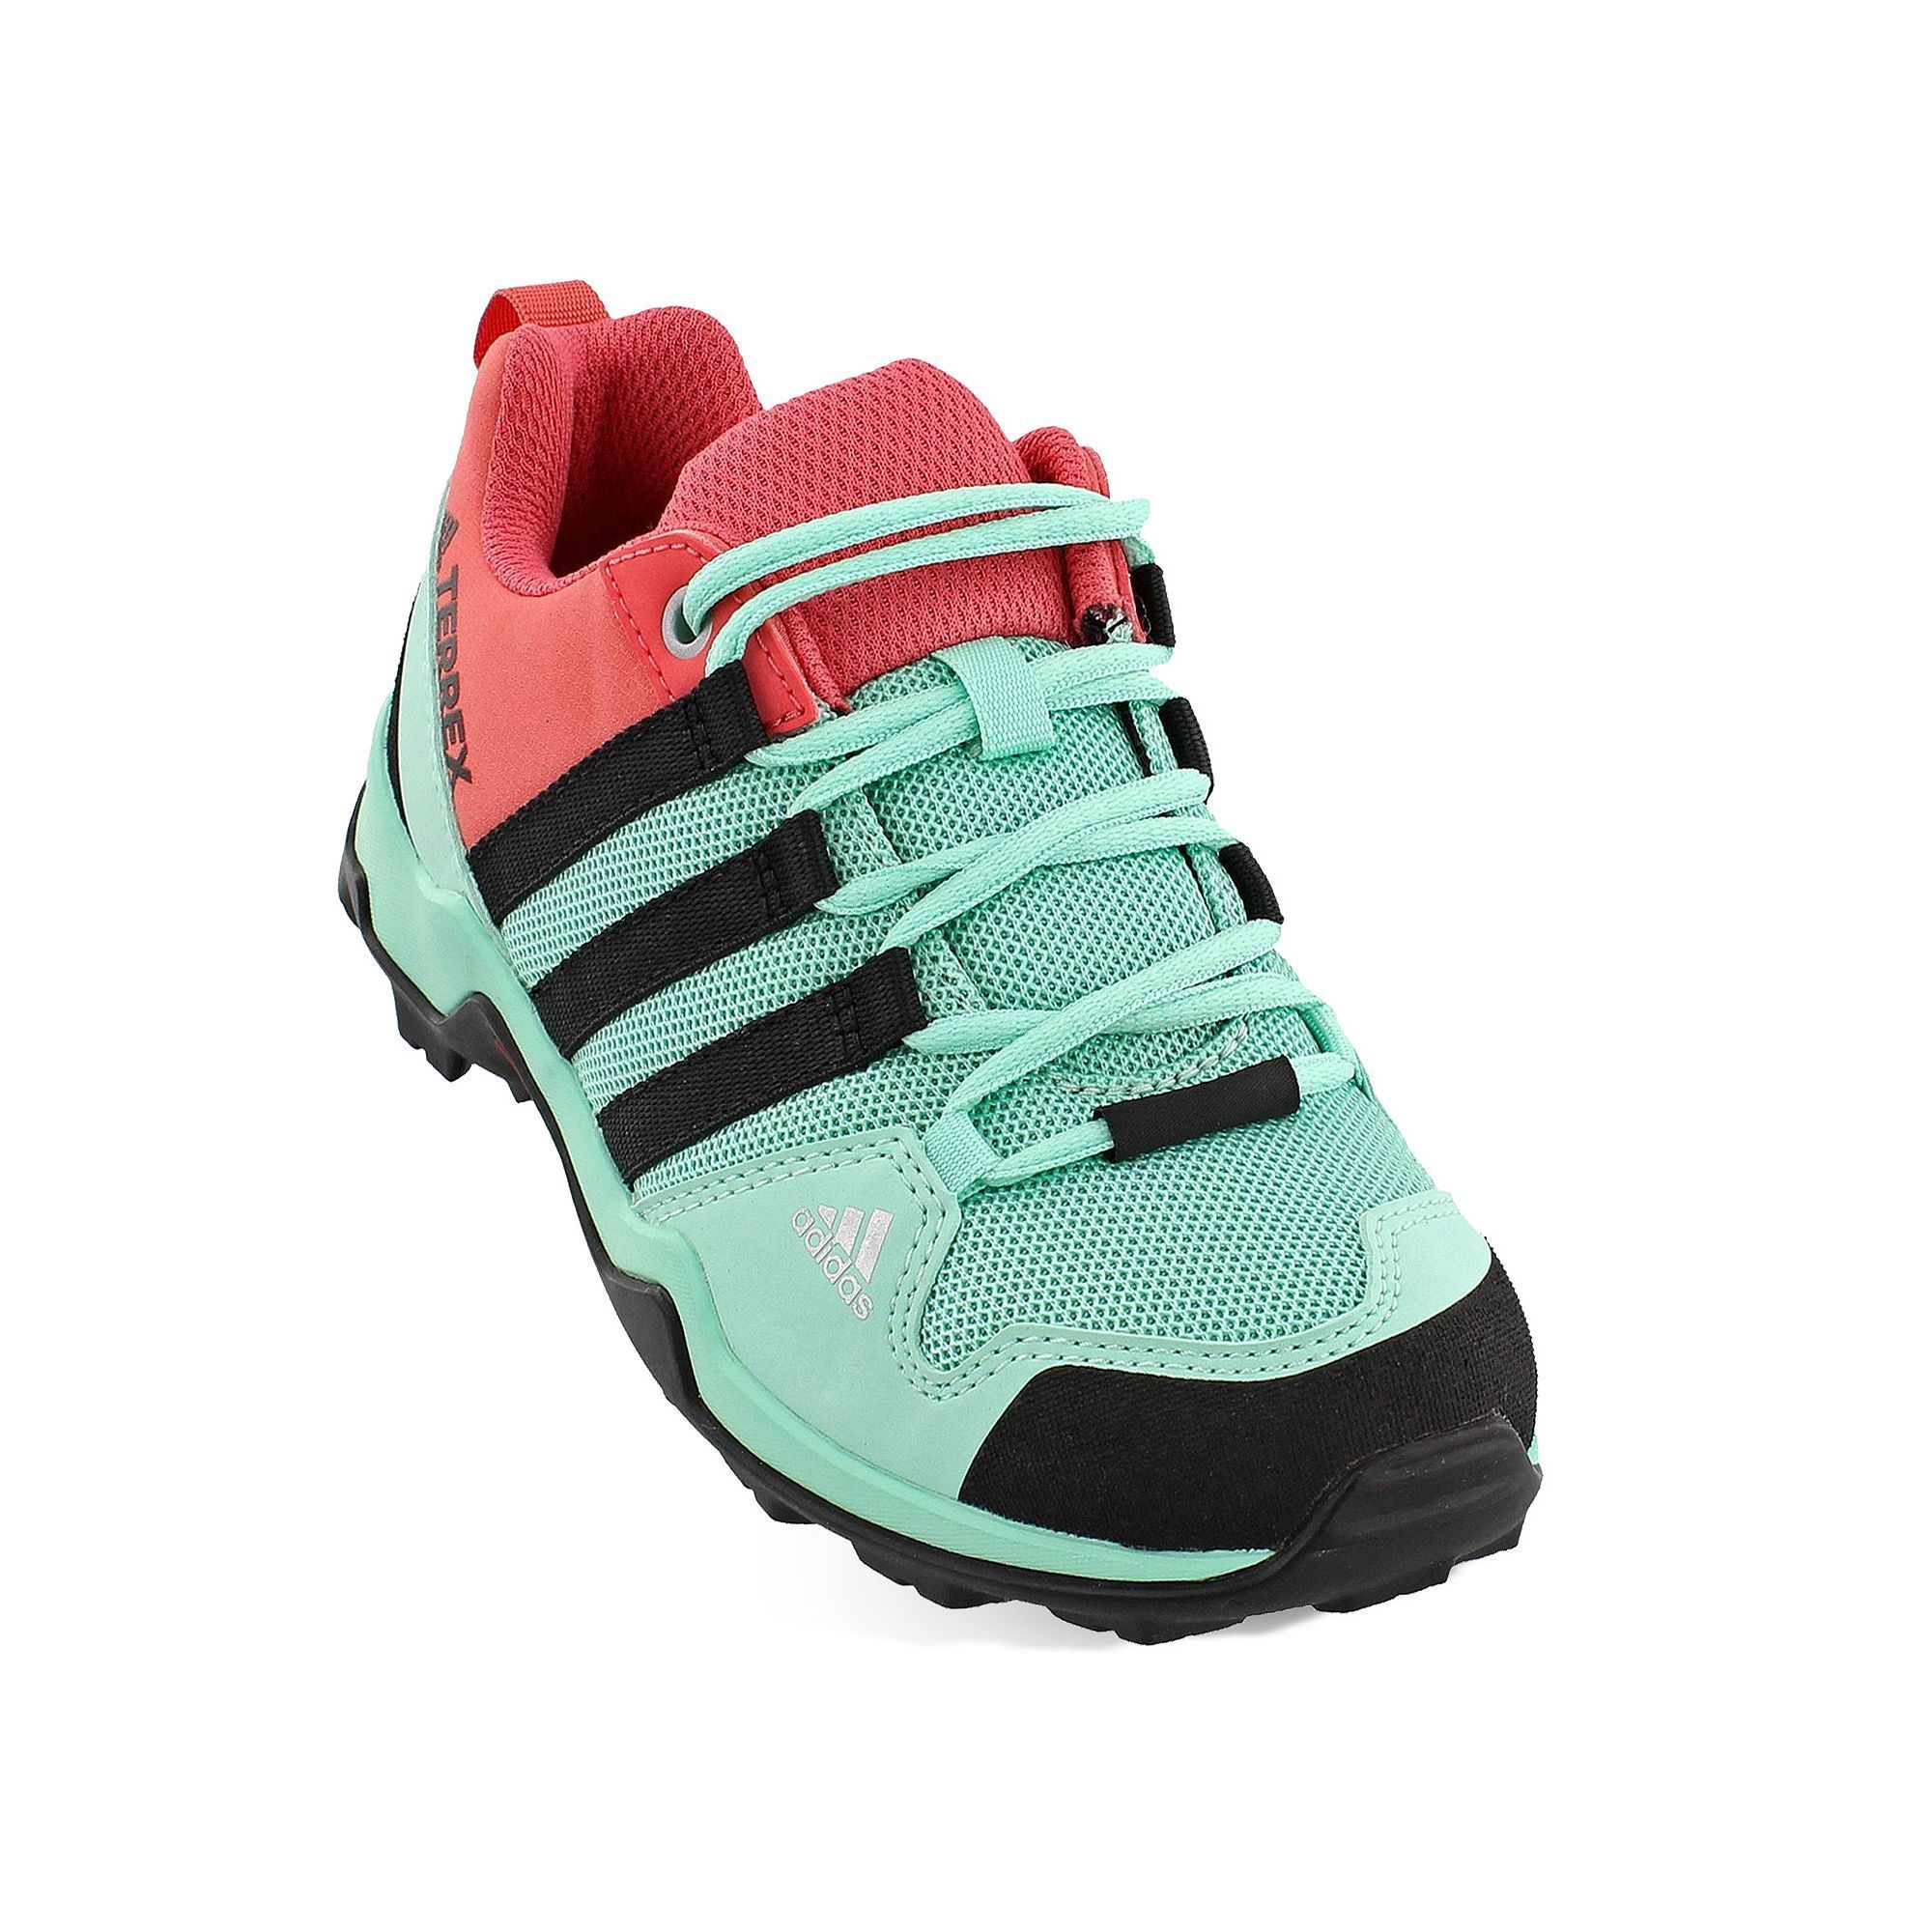 0491237d800ed adidas Outdoor Terrex AX2R Girls' Hiking Shoes | Products | Hiking ...